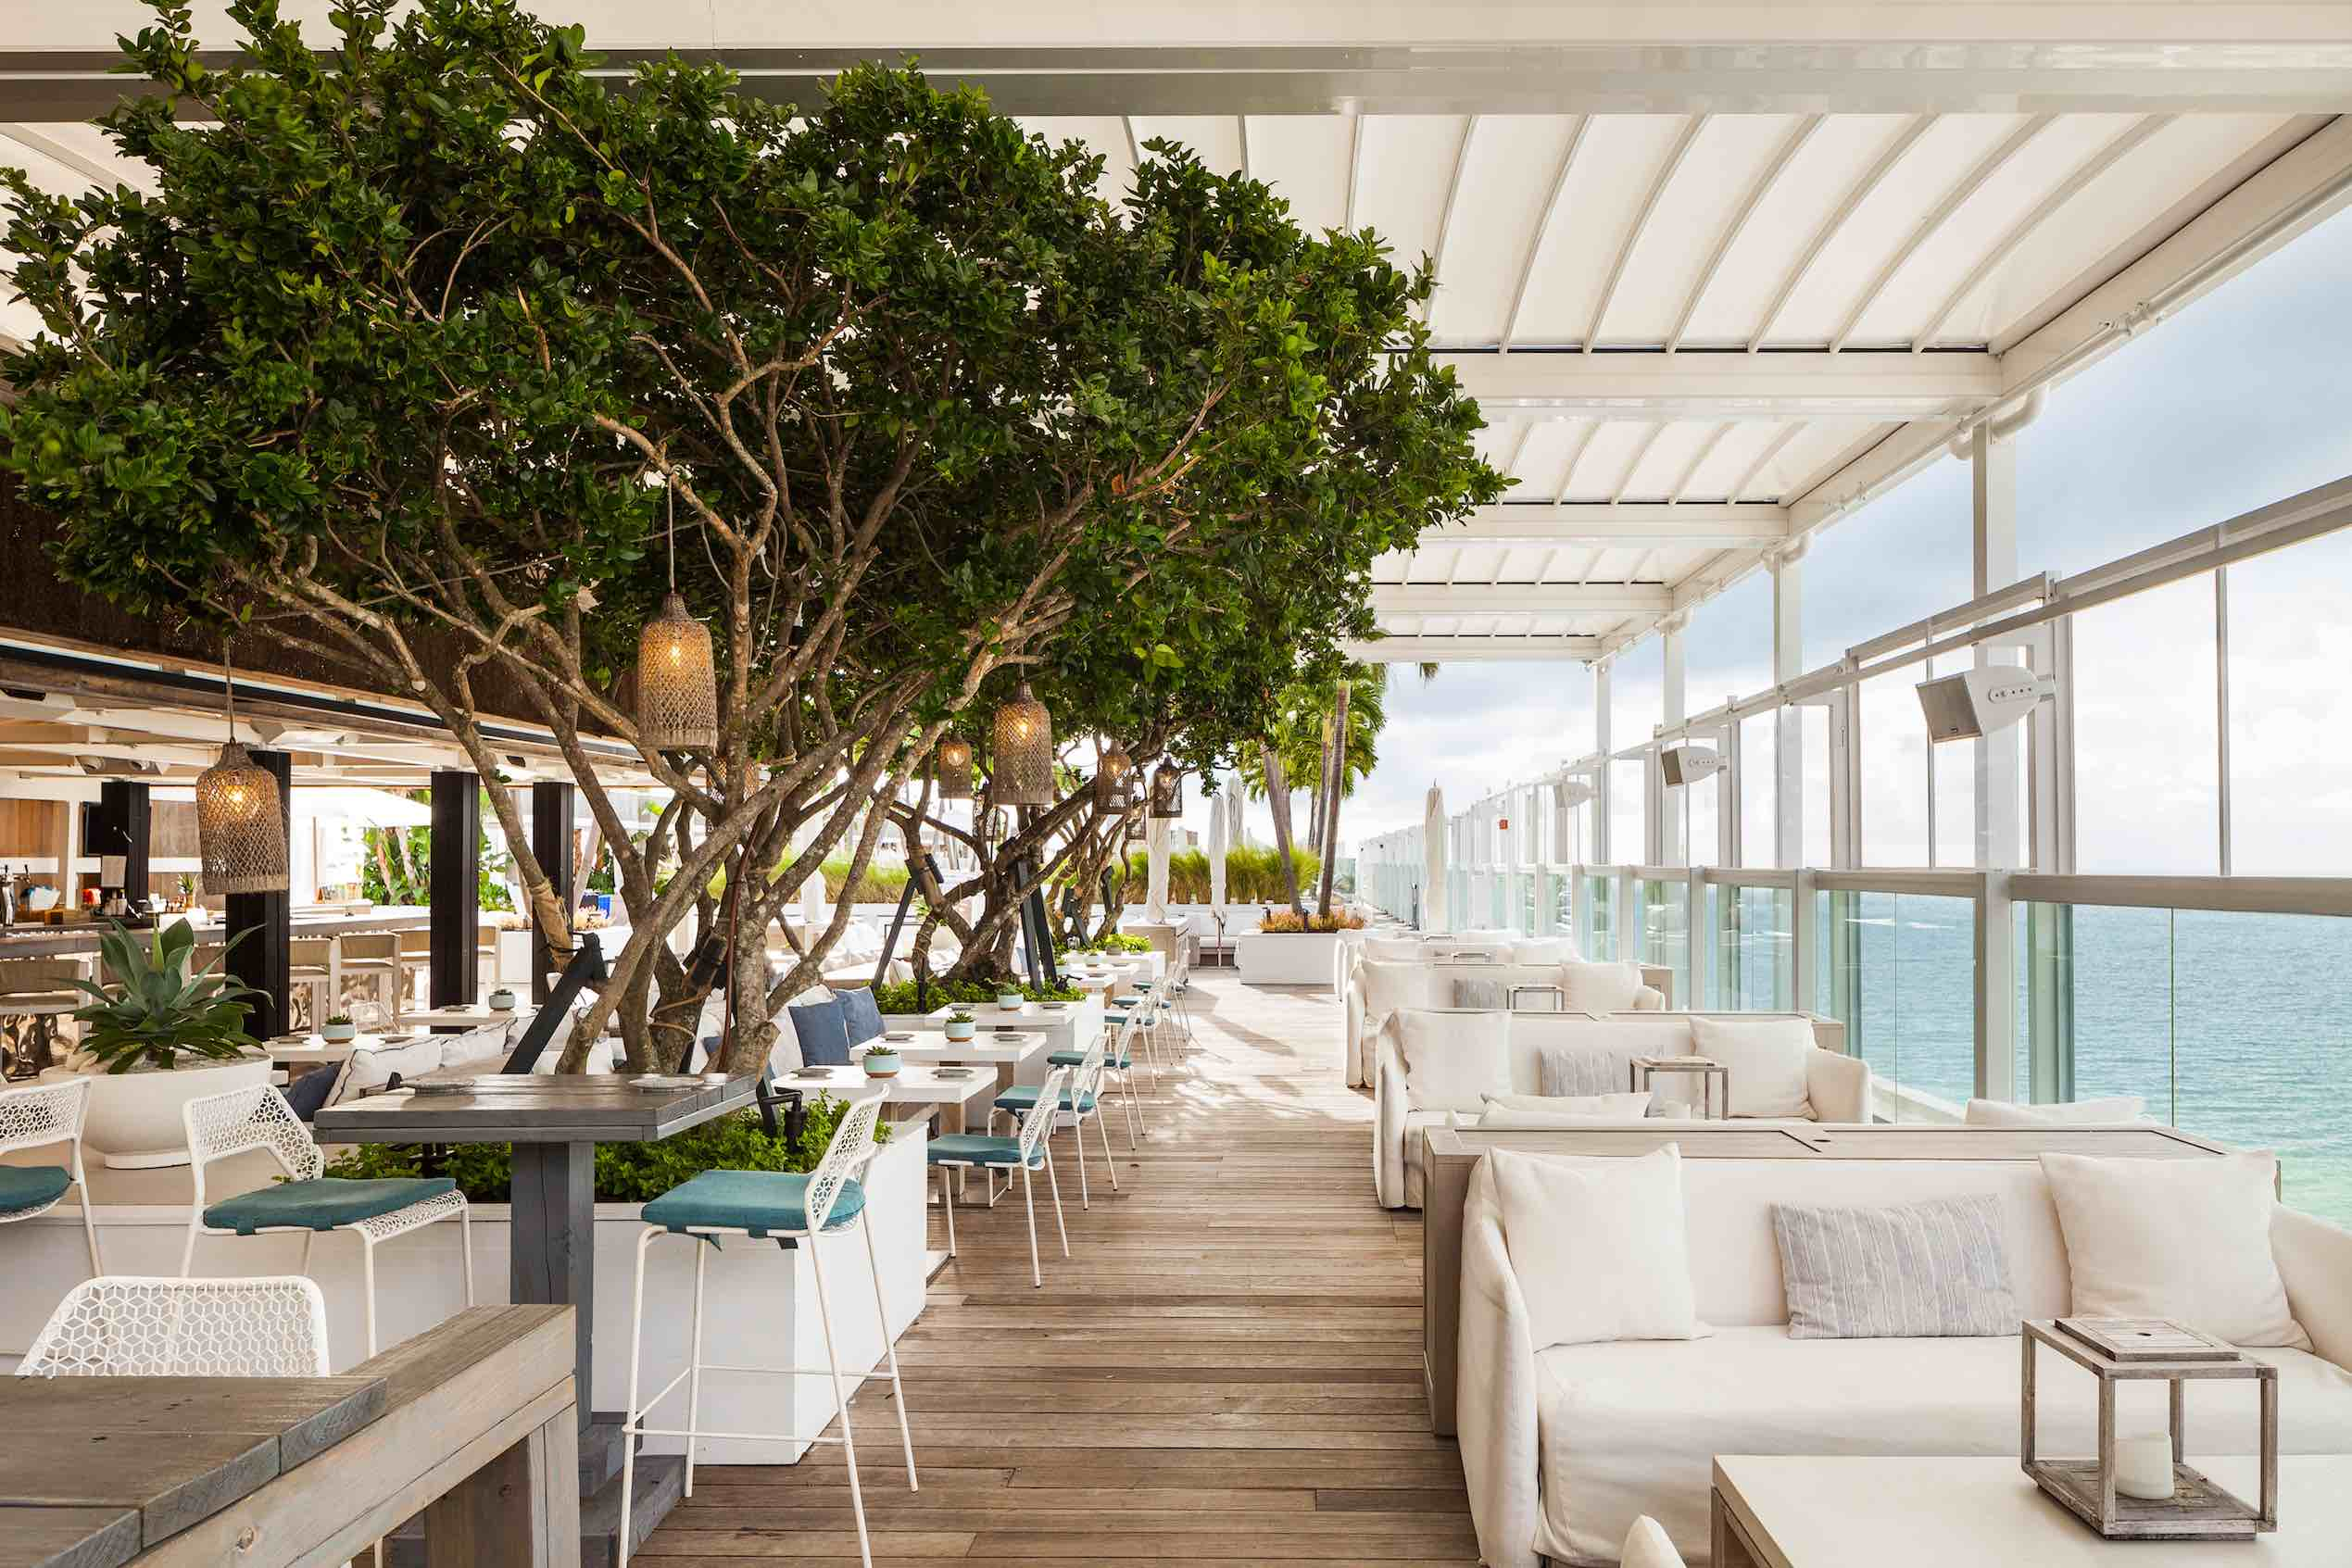 1 Hotel South Beach Rolls Out Exciting New Food & Beverage